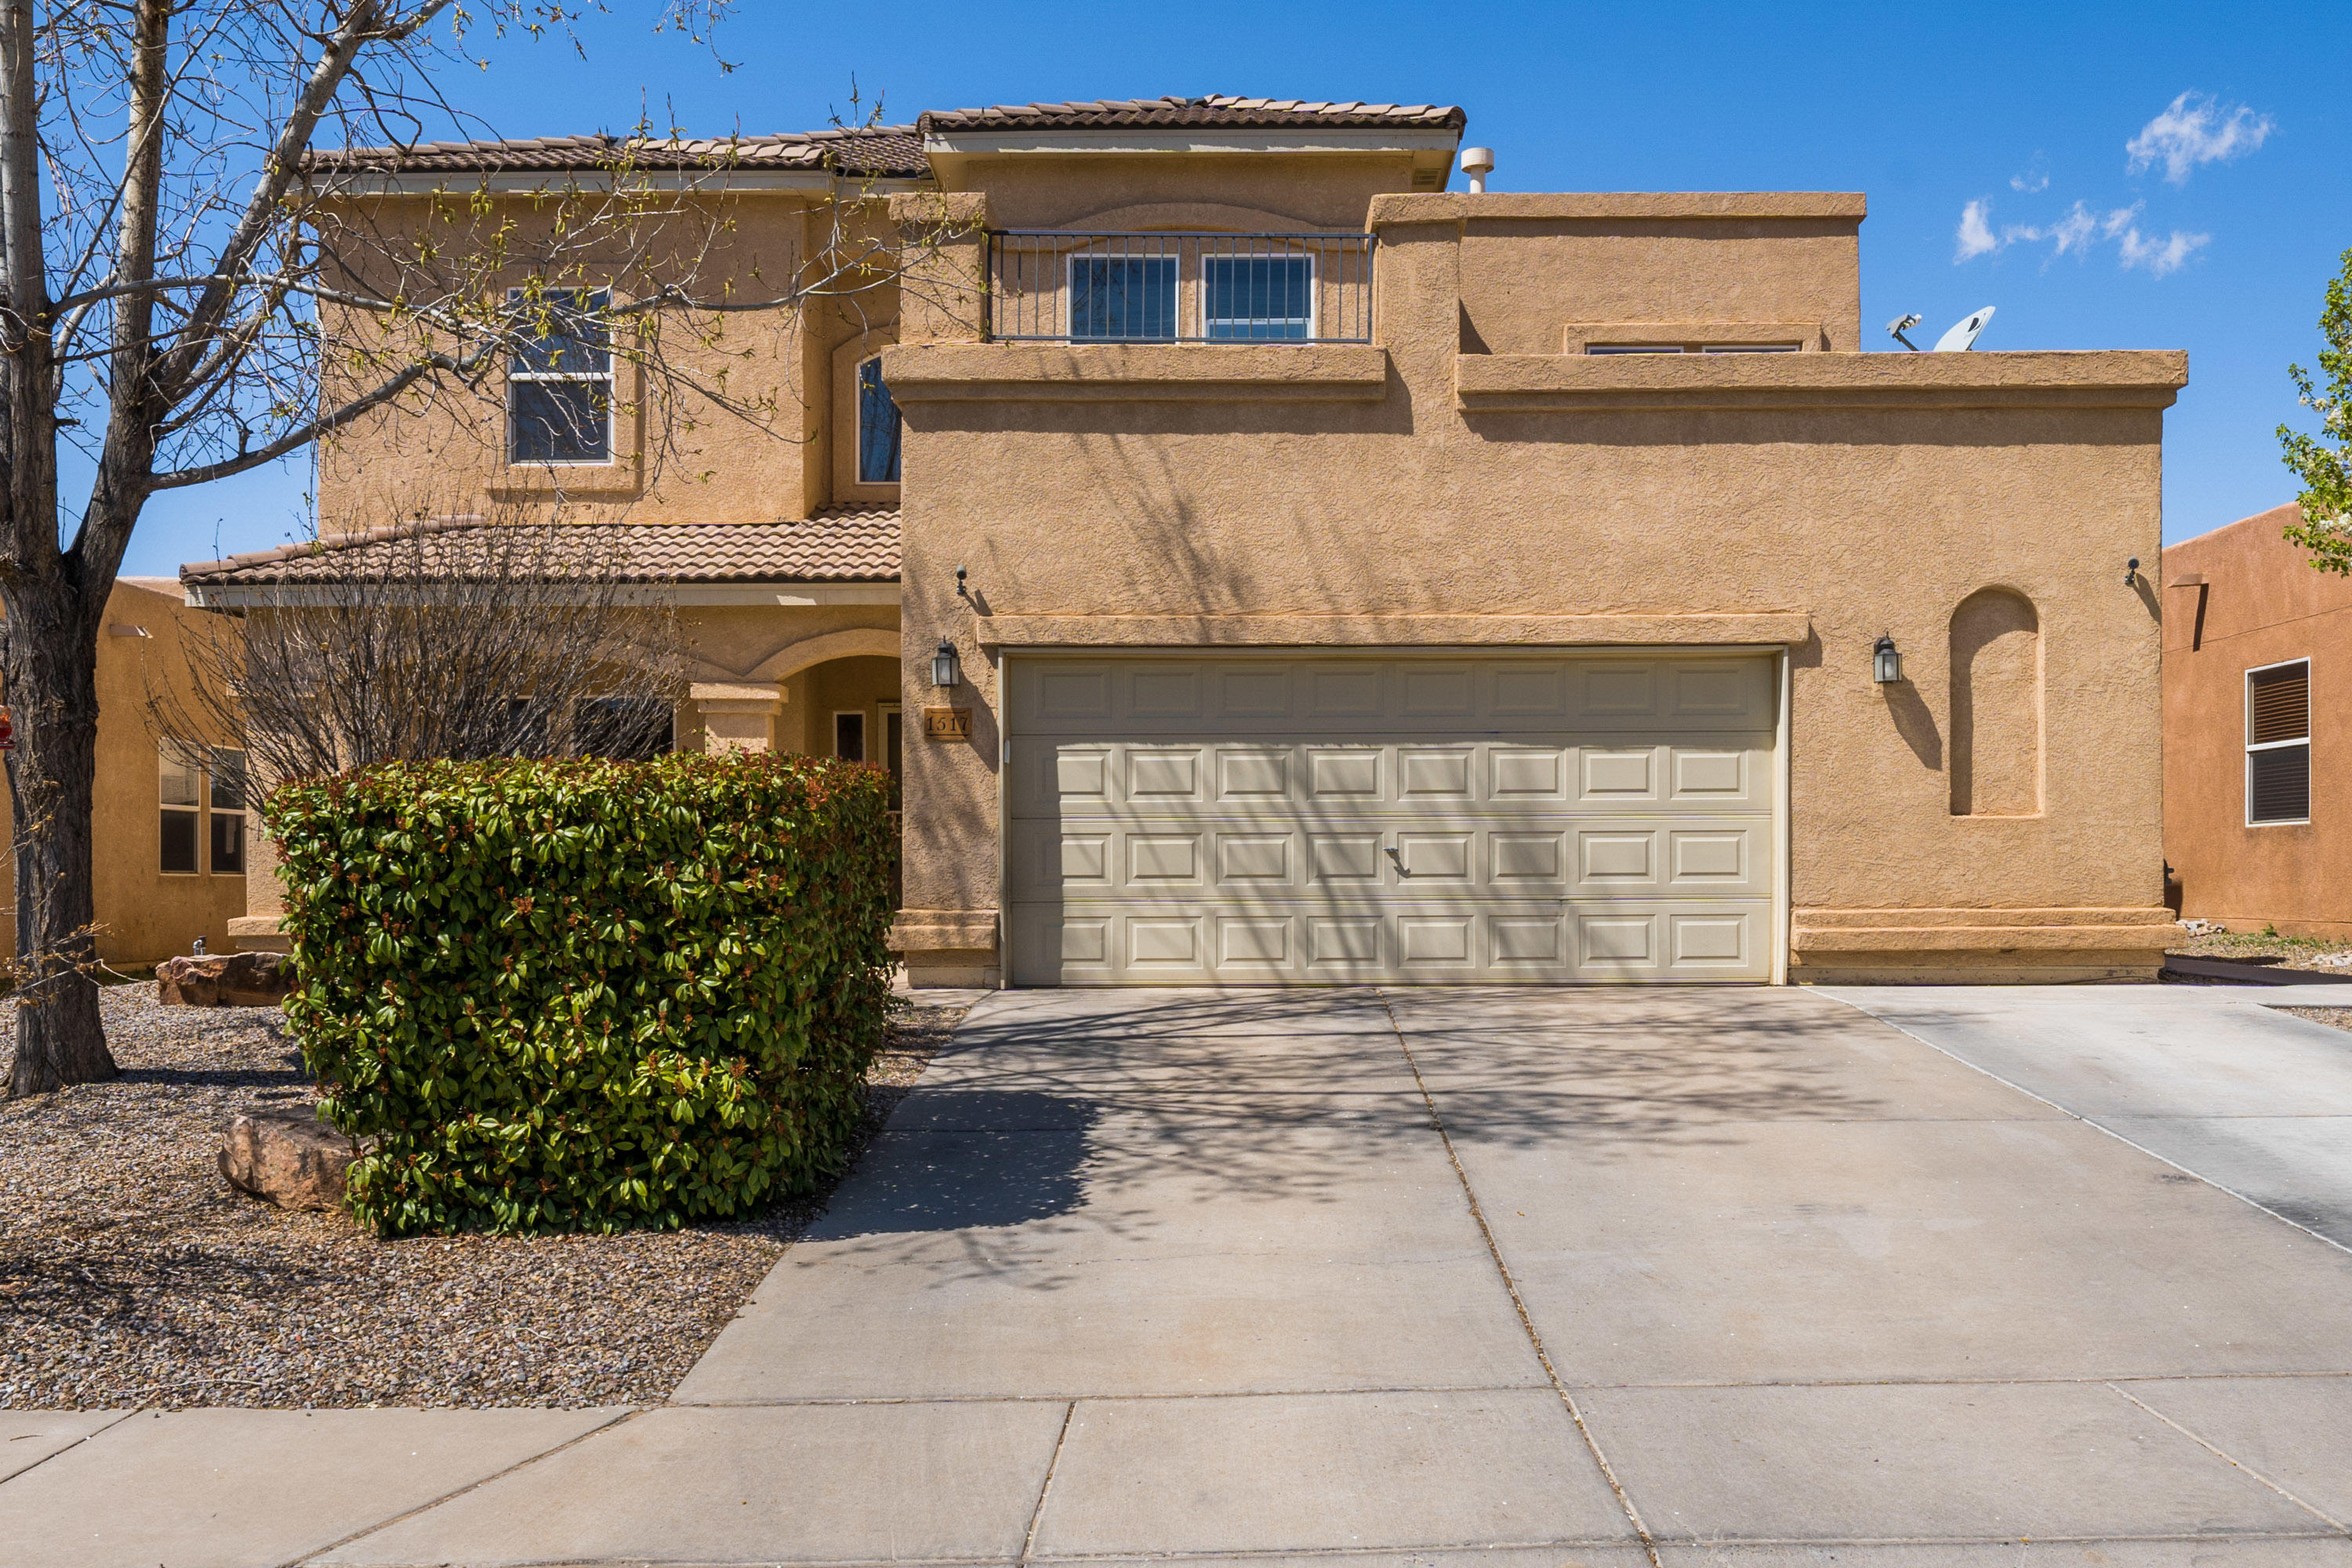 You do not want to miss out on this home in the beautiful Cabezon neighborhood. This beuatiful, well- maintained home has two living areas, possible 5th bedroom, formal dining room, large pantry, over-sized two car garage, and back yard with covered patio. Large kitchen with open-concept. Upstairs is spacious, with huge master suite with big bathroom, with two vanity areas, and walk- in closet. Home is located by parks and several eating establishments. You do not want to miss out on this home.